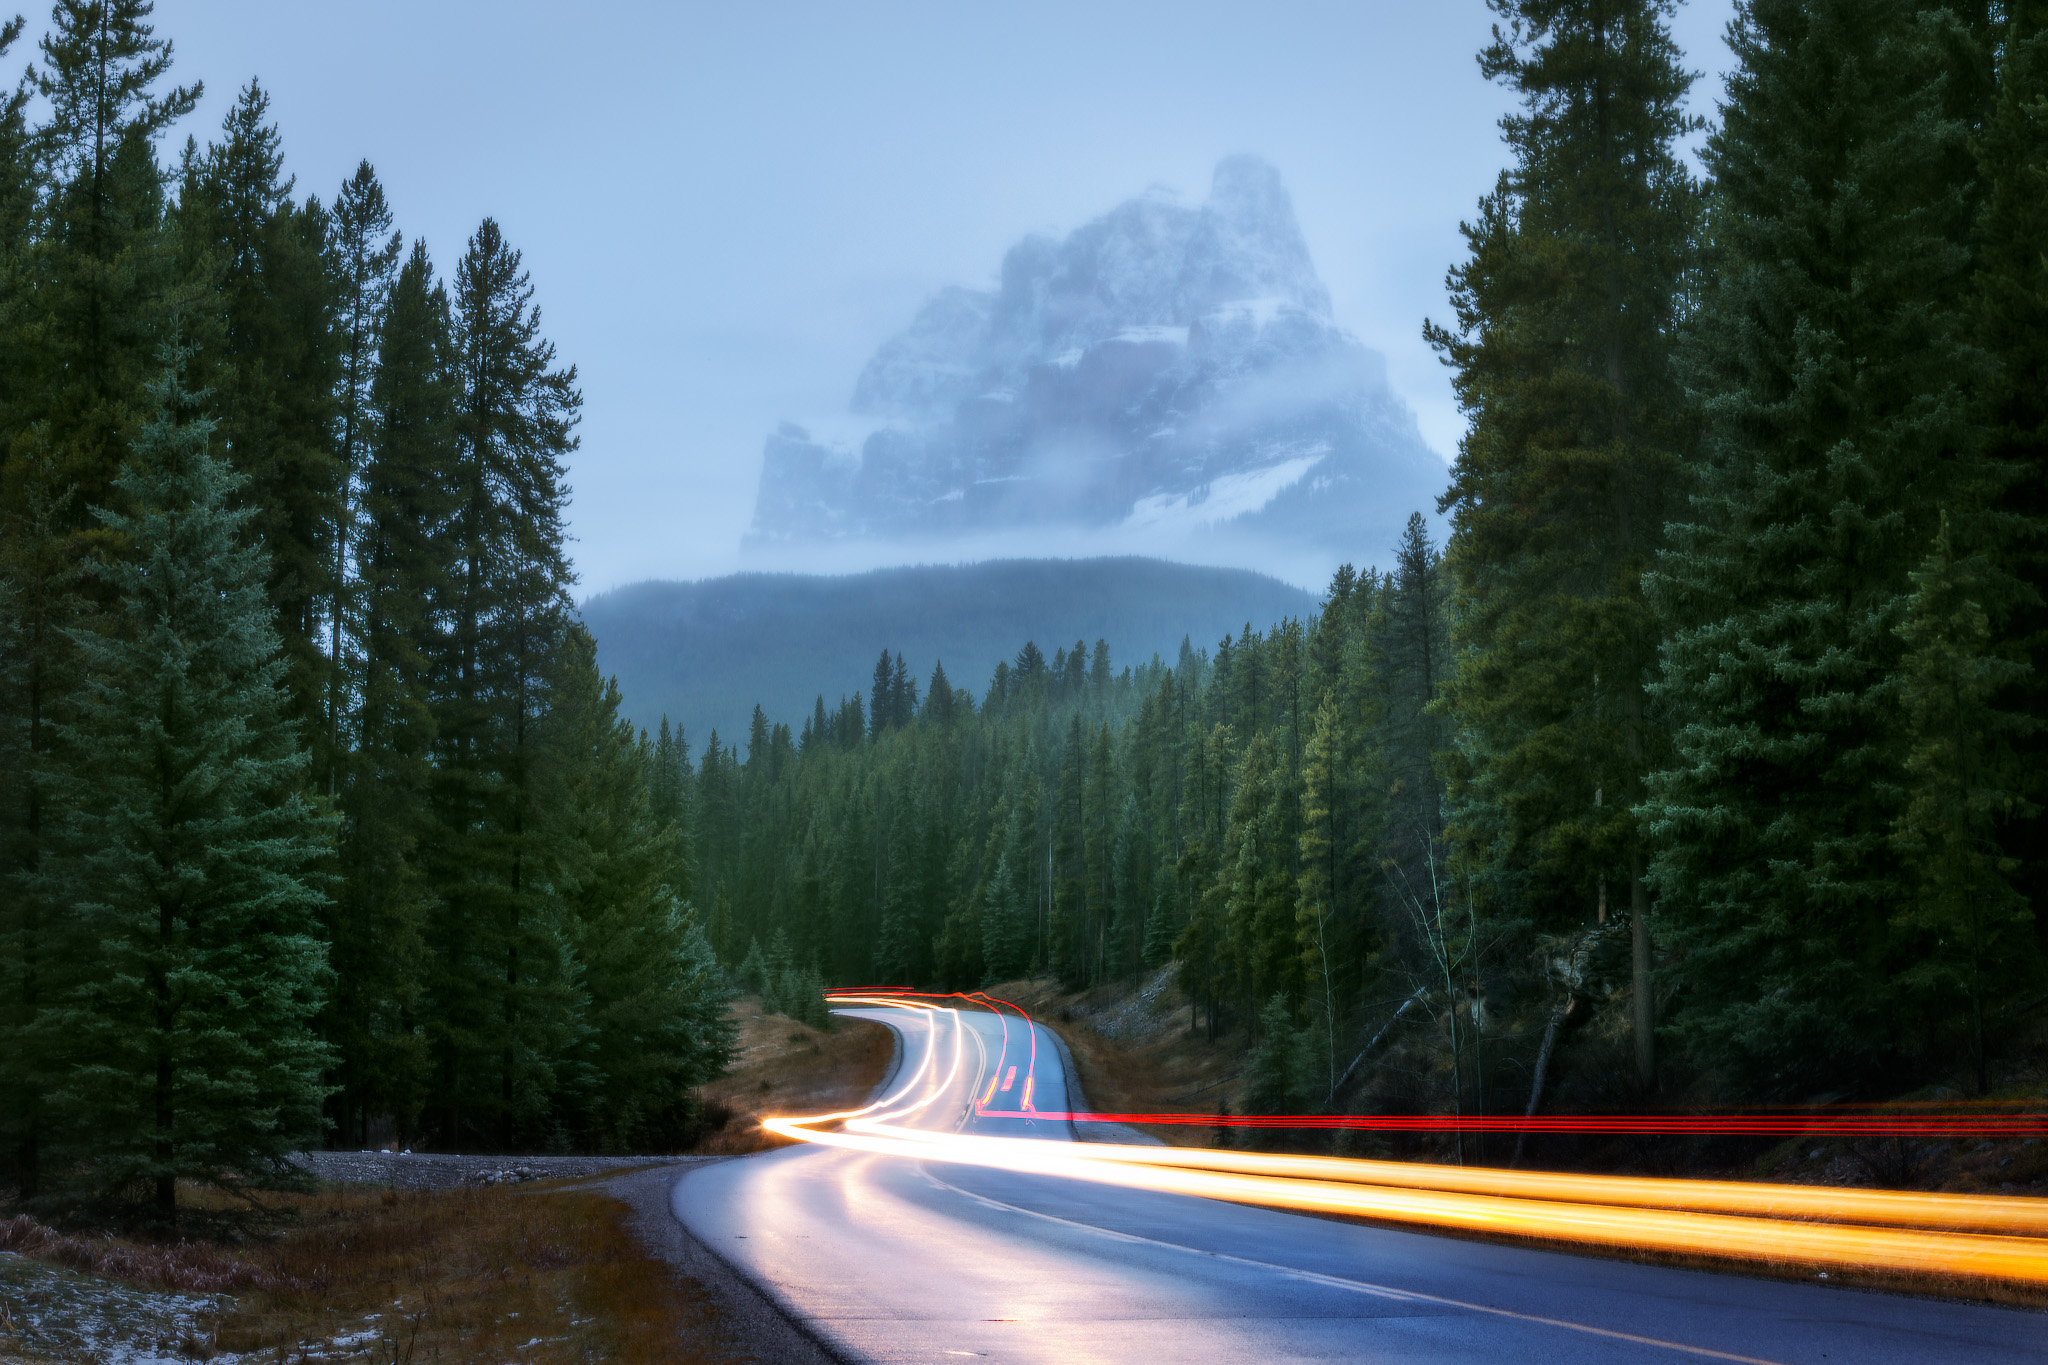 I drove up and down the Bow Valley Parkway which was deserted at this hour on a grey dawn